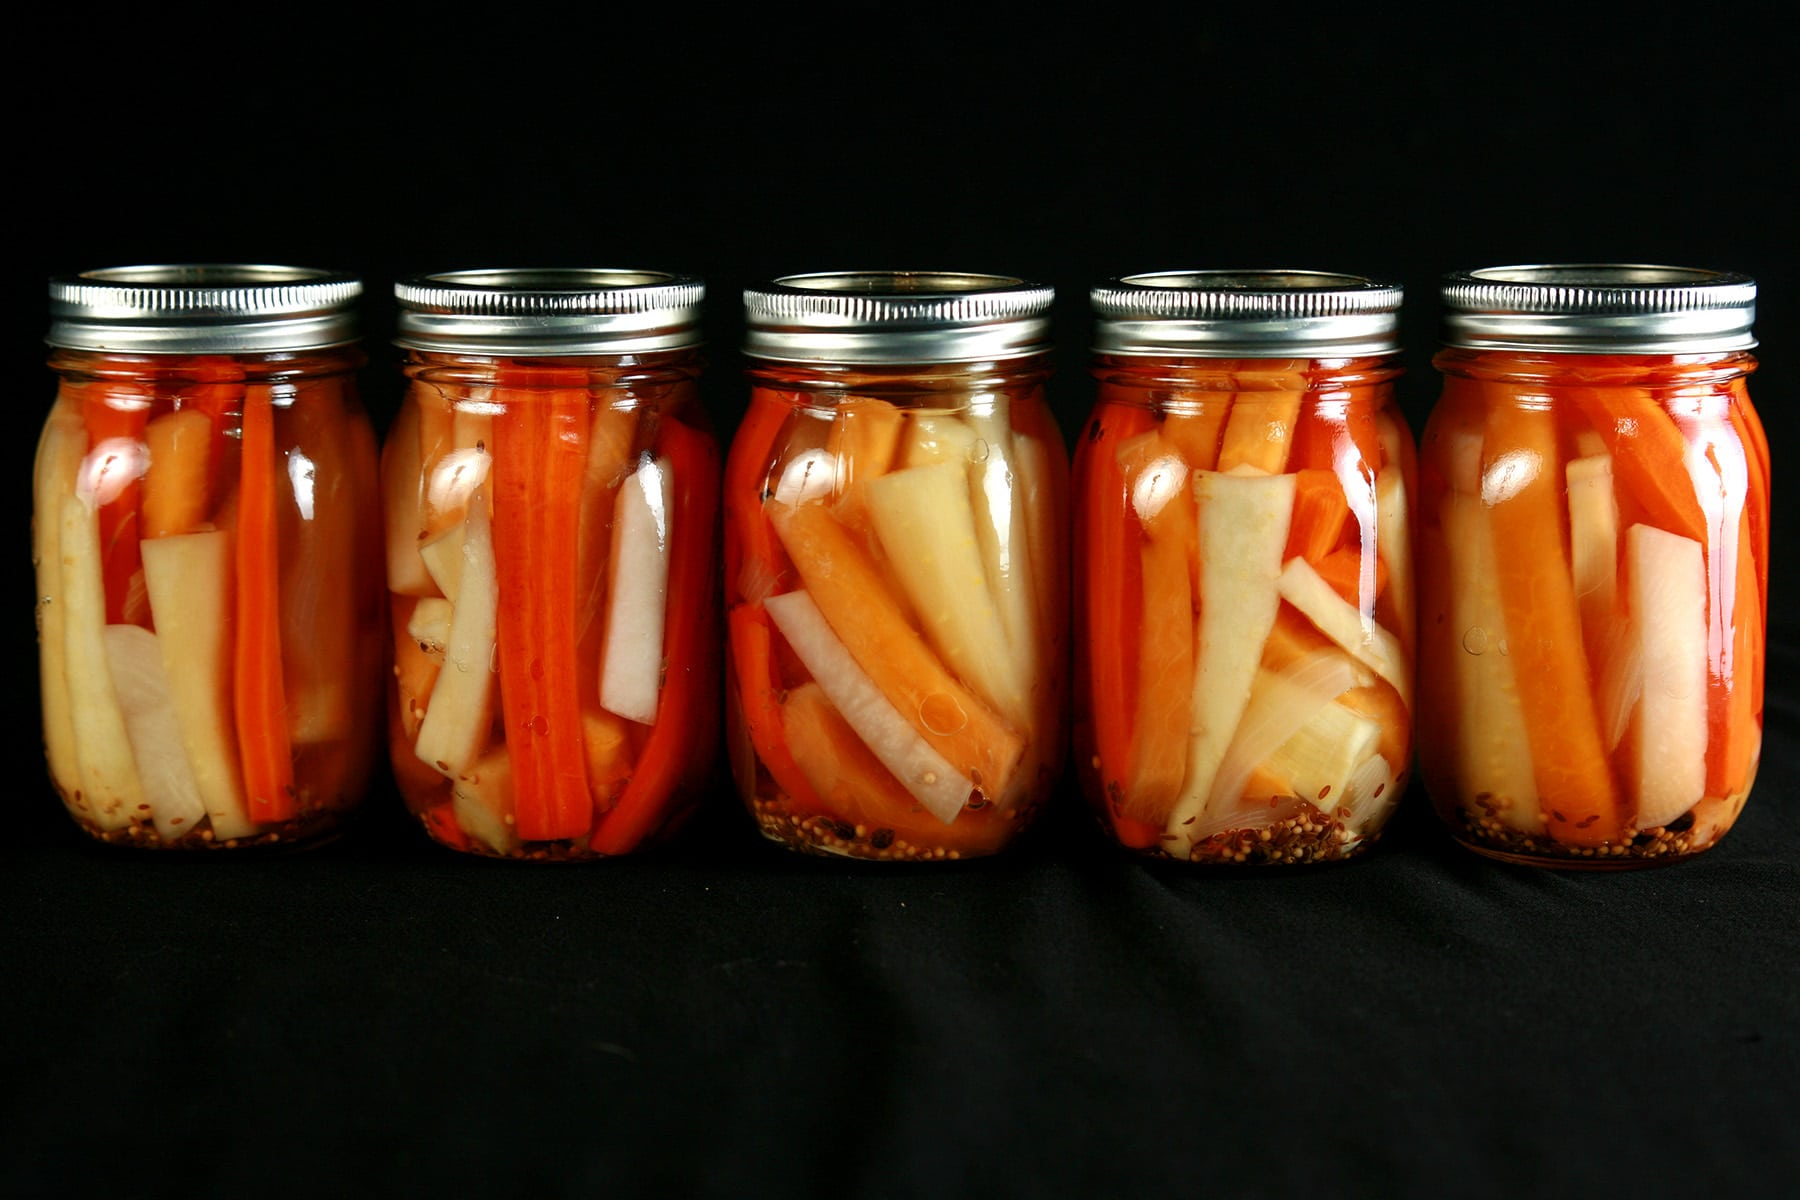 5 jars of mixed root vegetable pickles. Spears of carrot, parsnip, and turnip are visible.